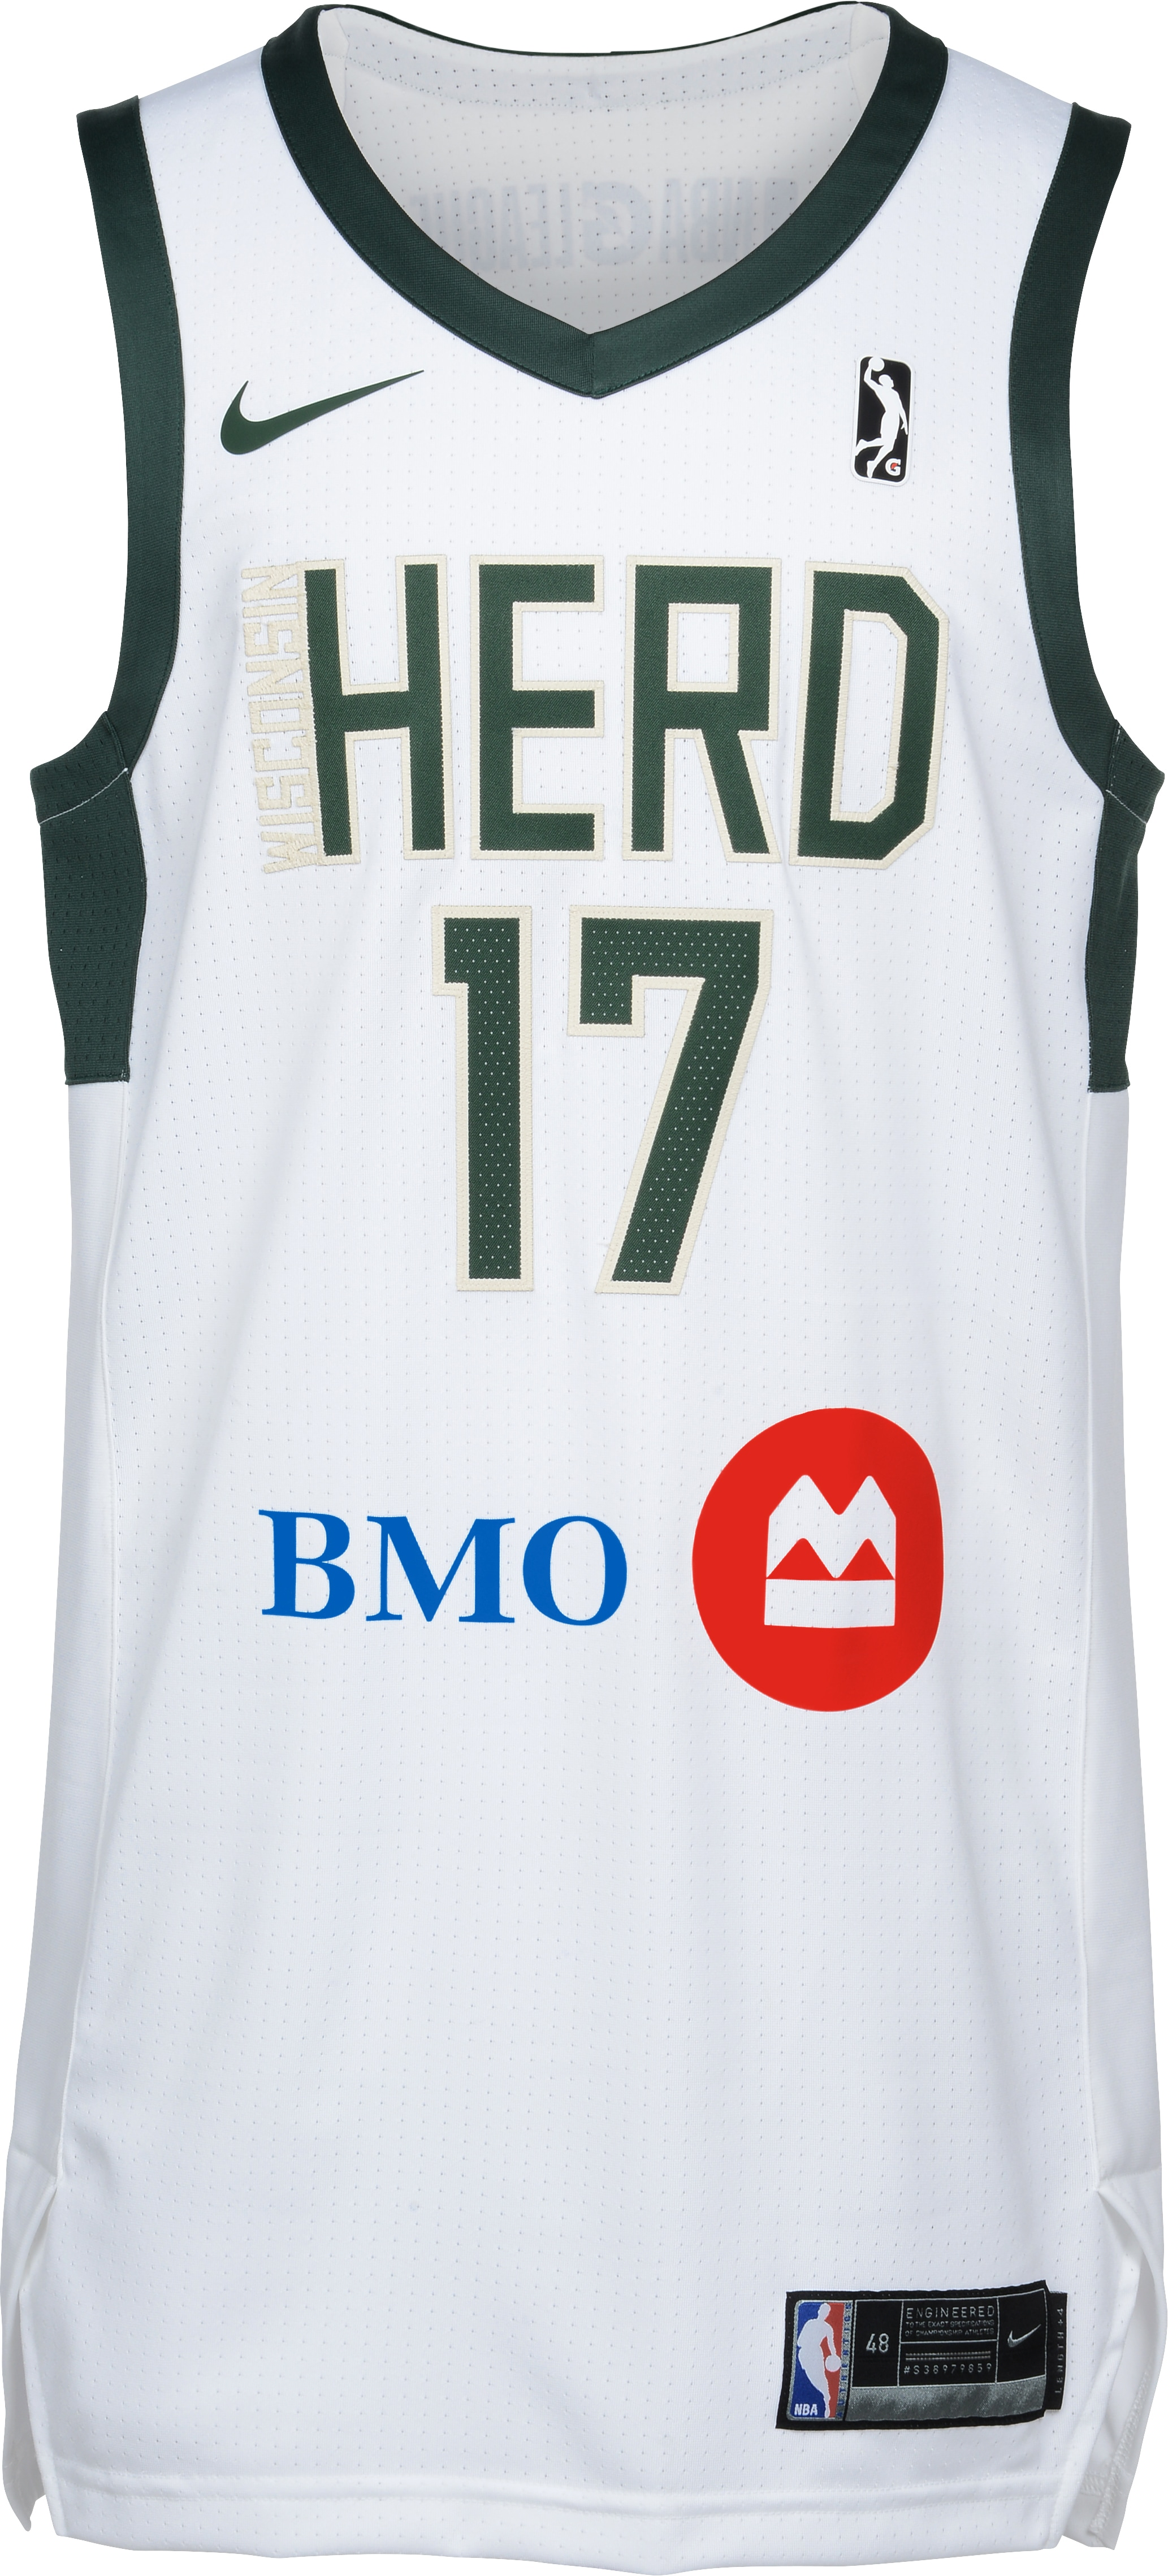 3758a87f842 The Wisconsin Herd will wear its white home uniforms on Friday